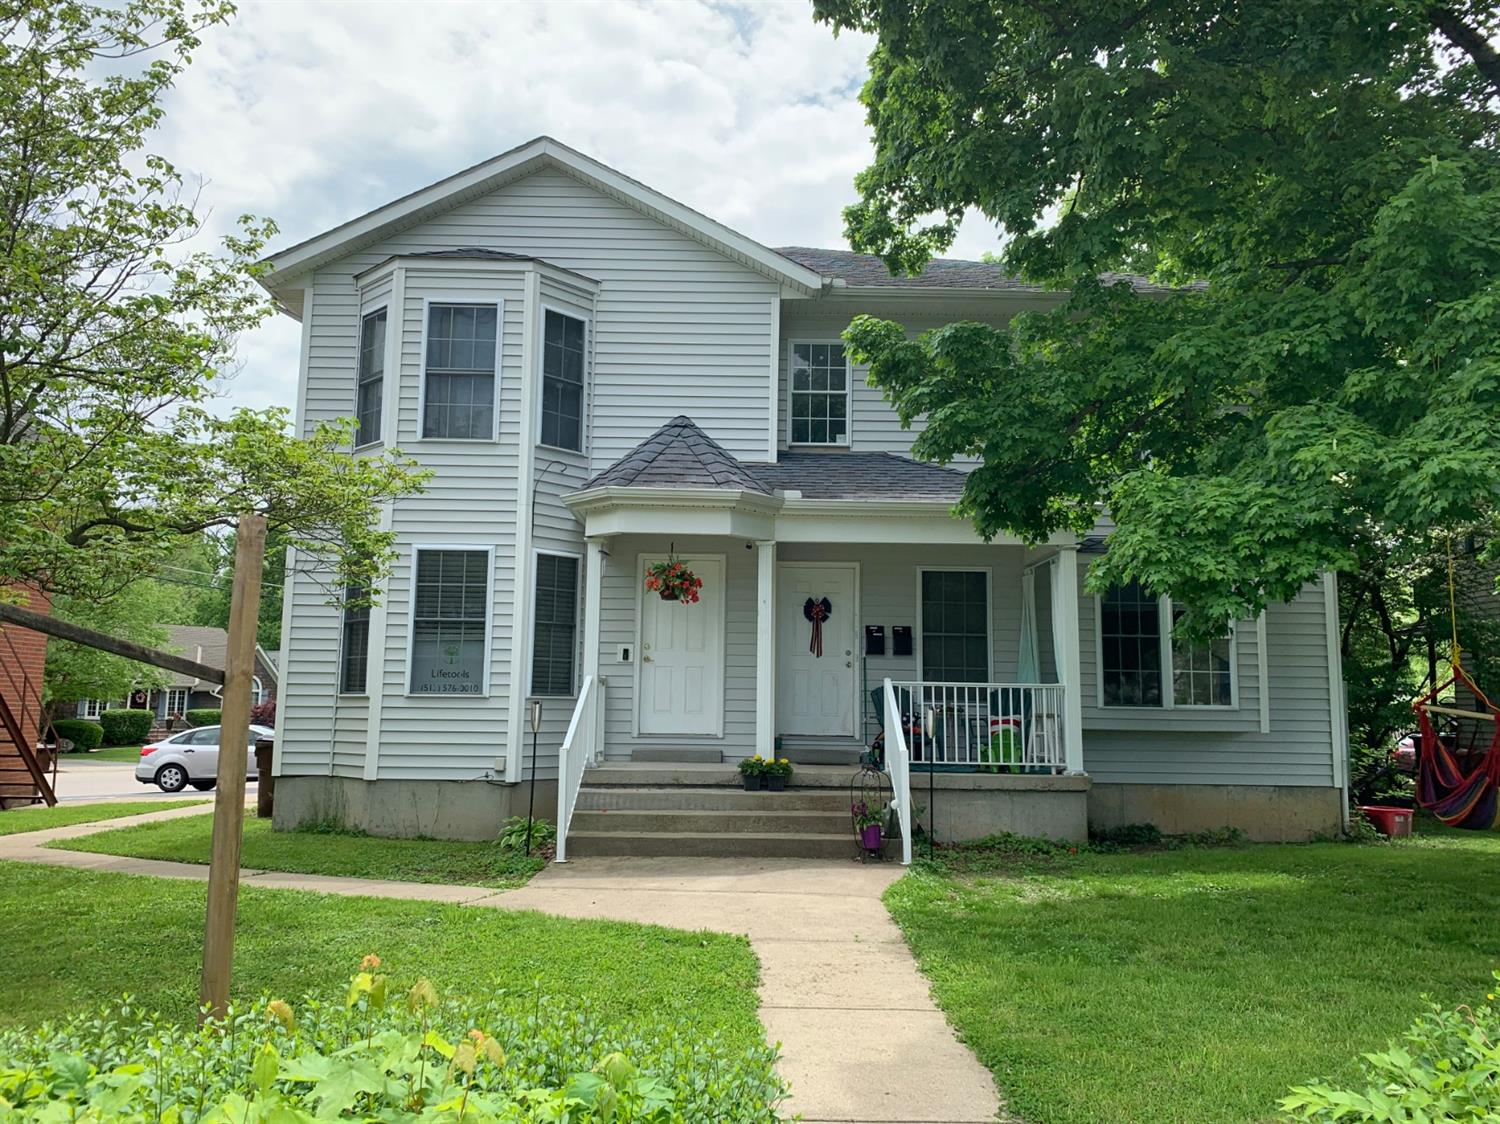 Property for sale at 632 Main Street, Milford,  Ohio 45150